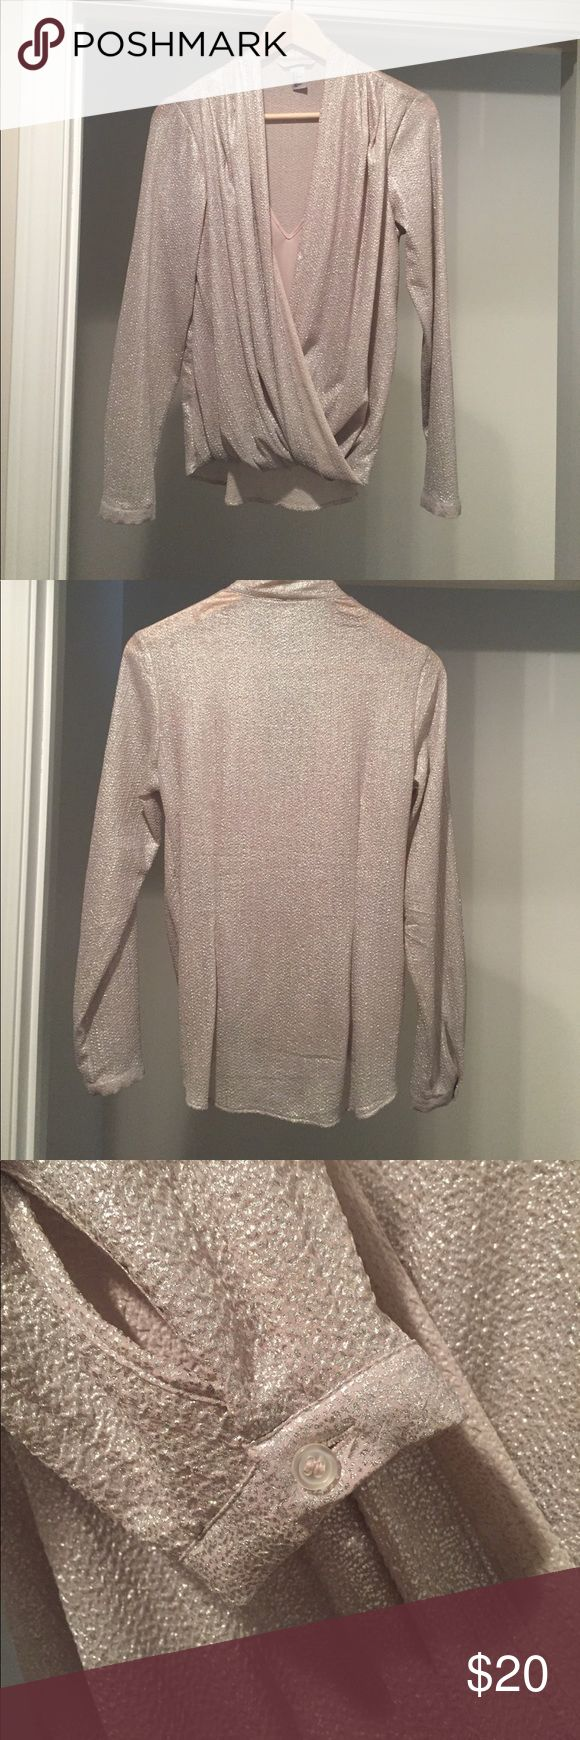 """H&M Gold and Silver Long Sleeve Blouse with cami Worn once. 26"""" in length from center back. May have been a button to connect the folds in front but it wasn't there when I wore it 😞 could easily attach one if you wanted to hide the cami. Tops"""